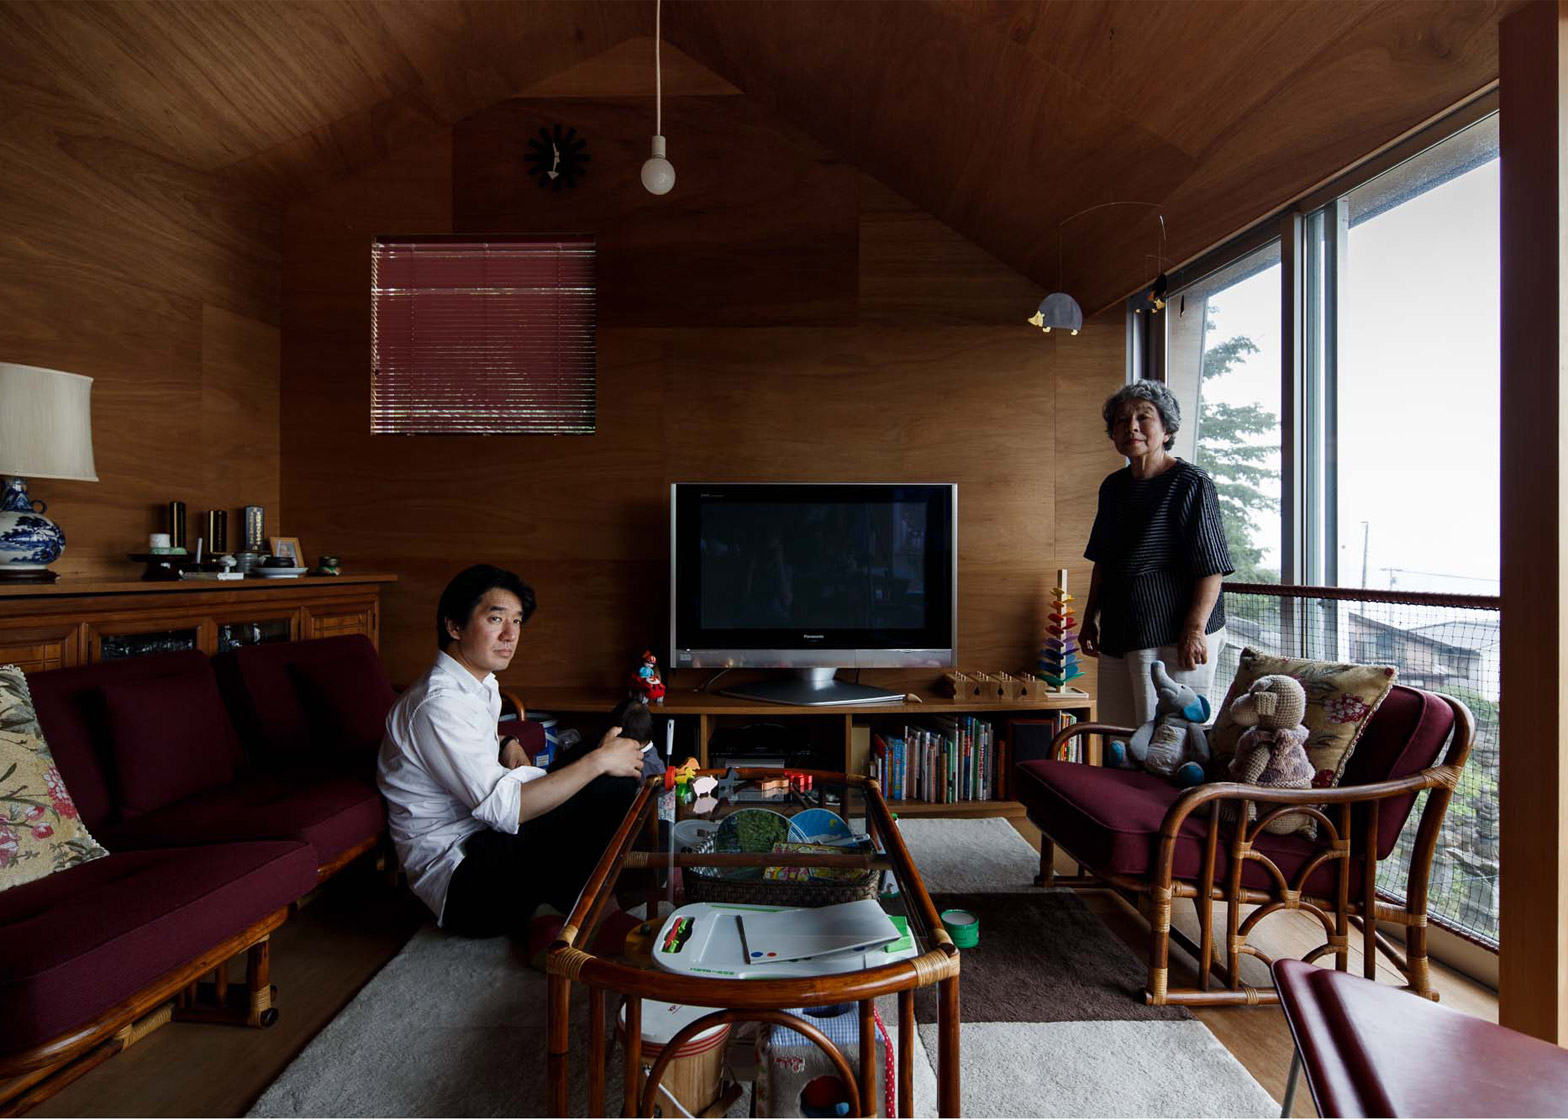 Archipelago of the house in Japan